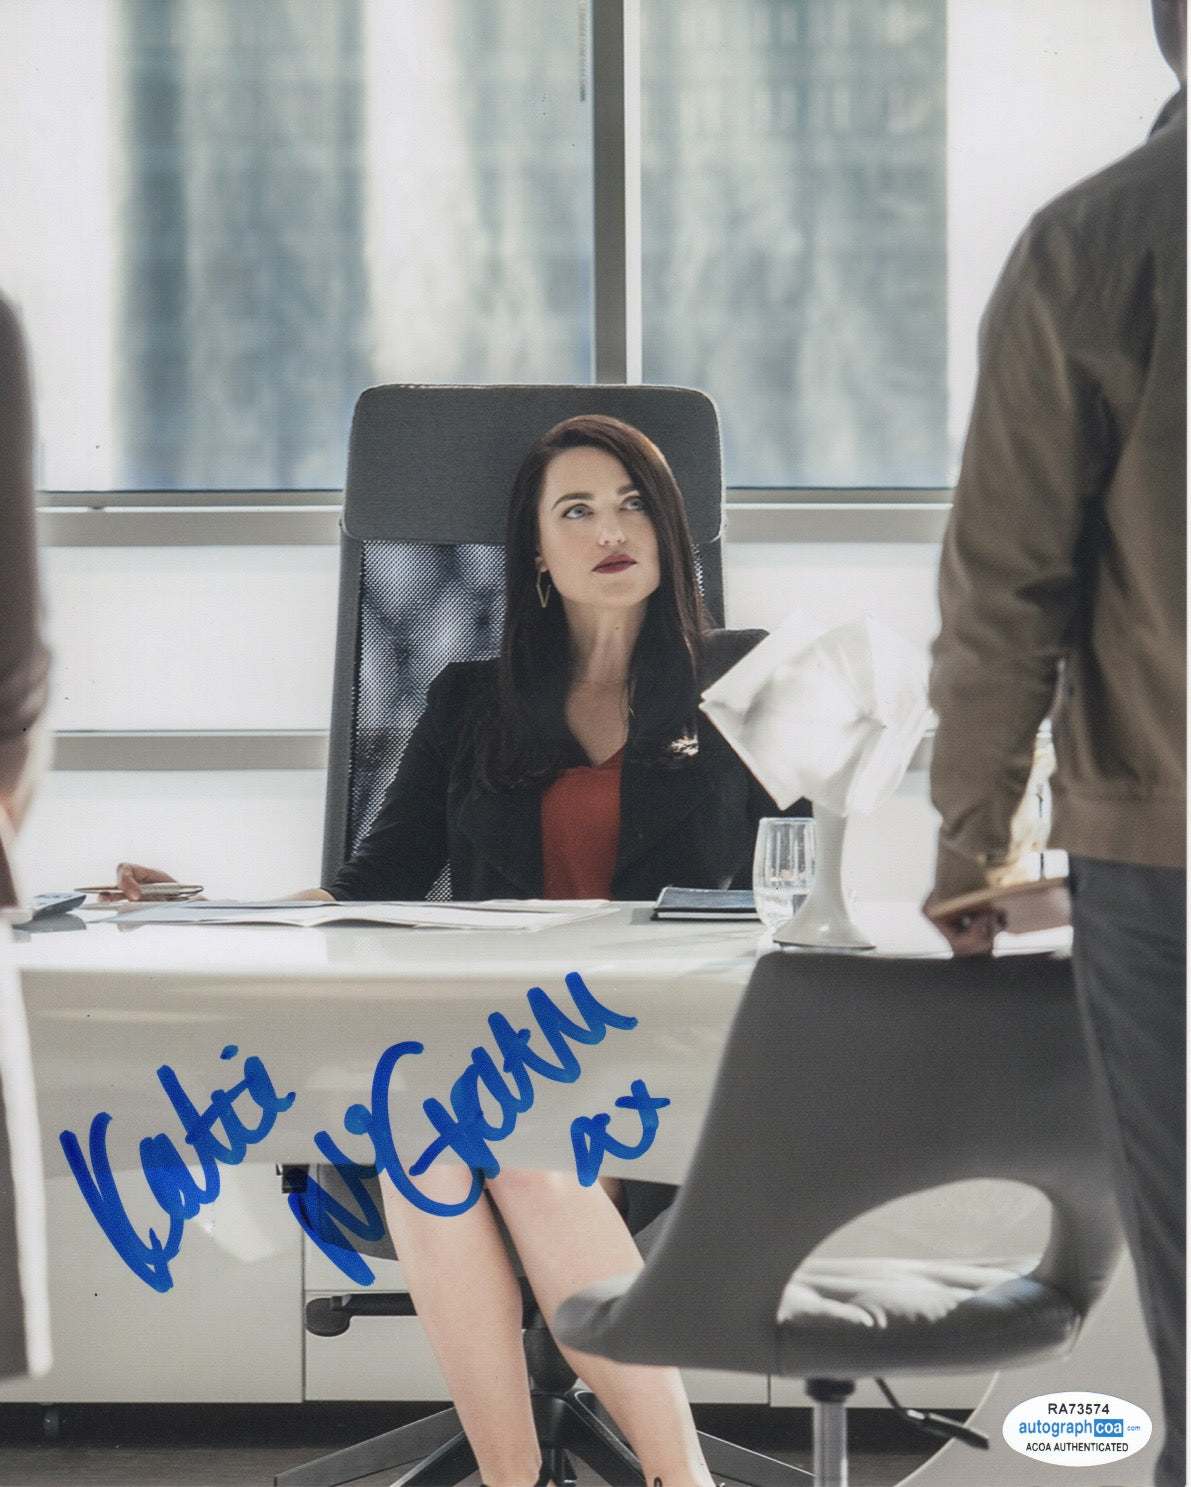 Katie McGrath Supergirl Signed Autograph 8x10 Photo ACOA #18